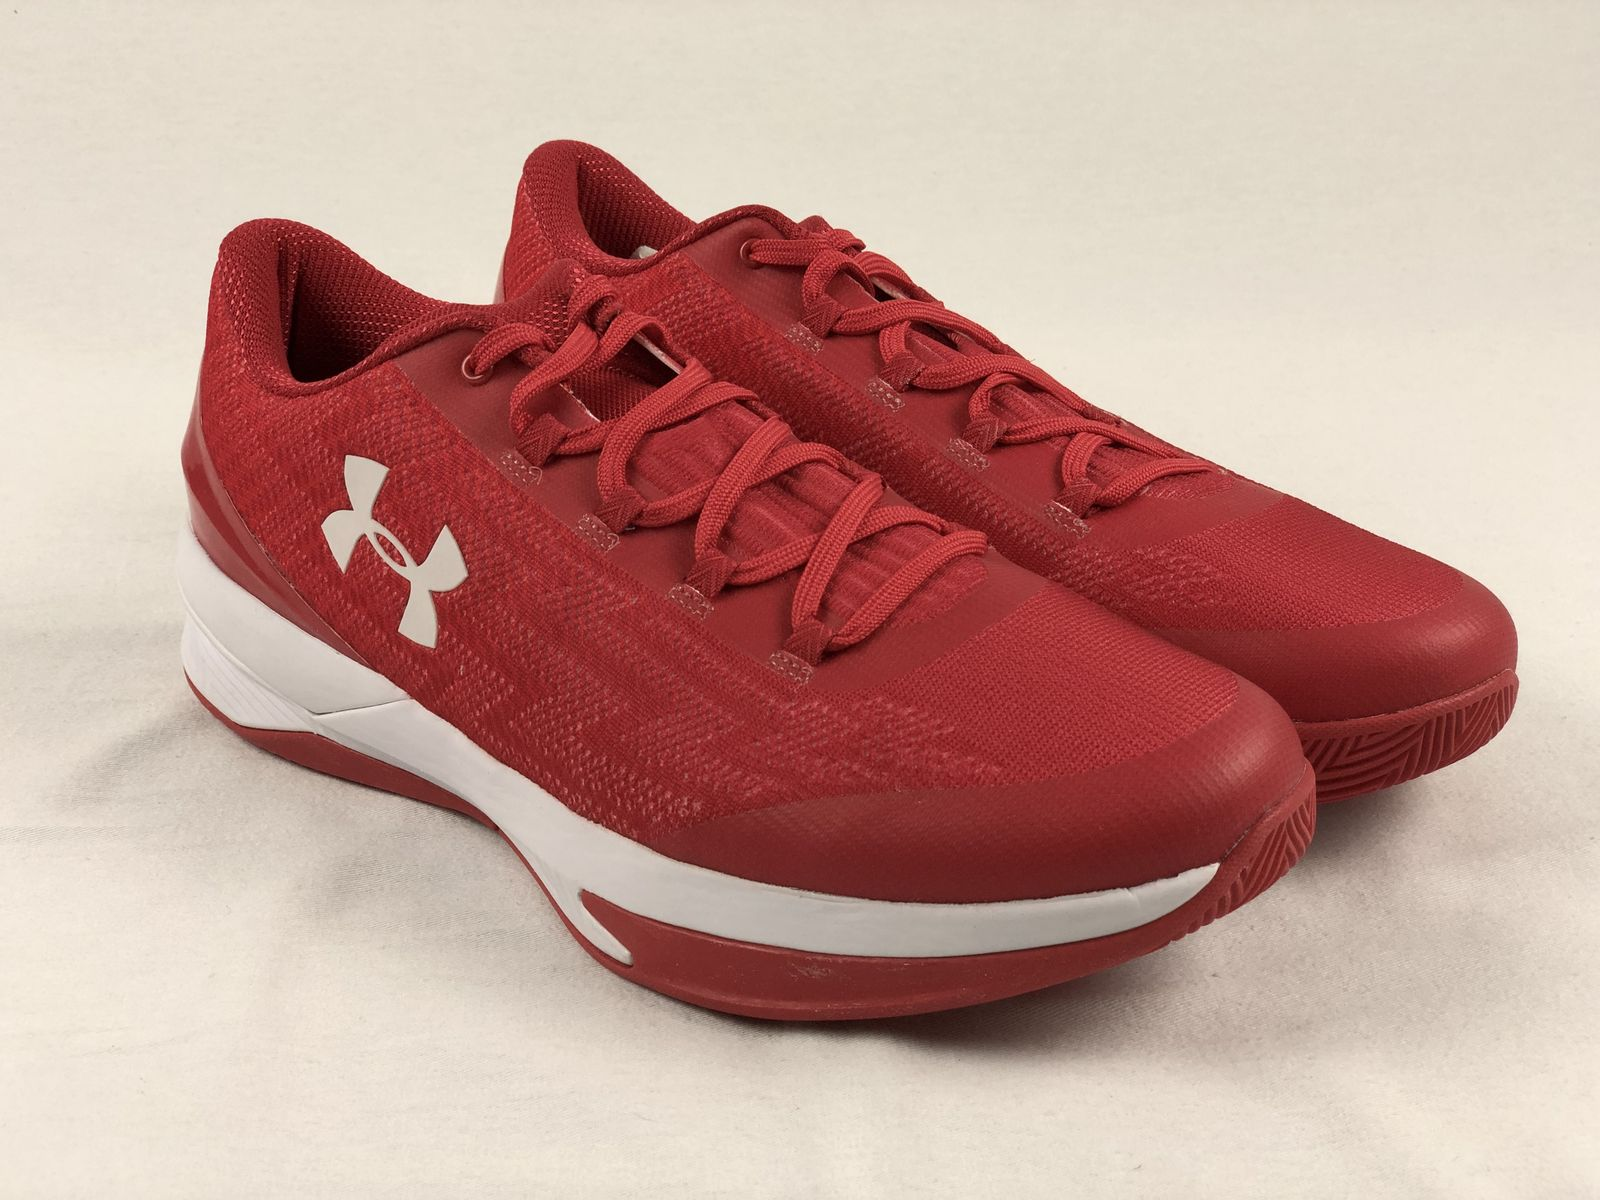 b83f7a559d7 Details about NEW Under Armour Charged Controller - Red Basketball Shoes ( Men s 14)